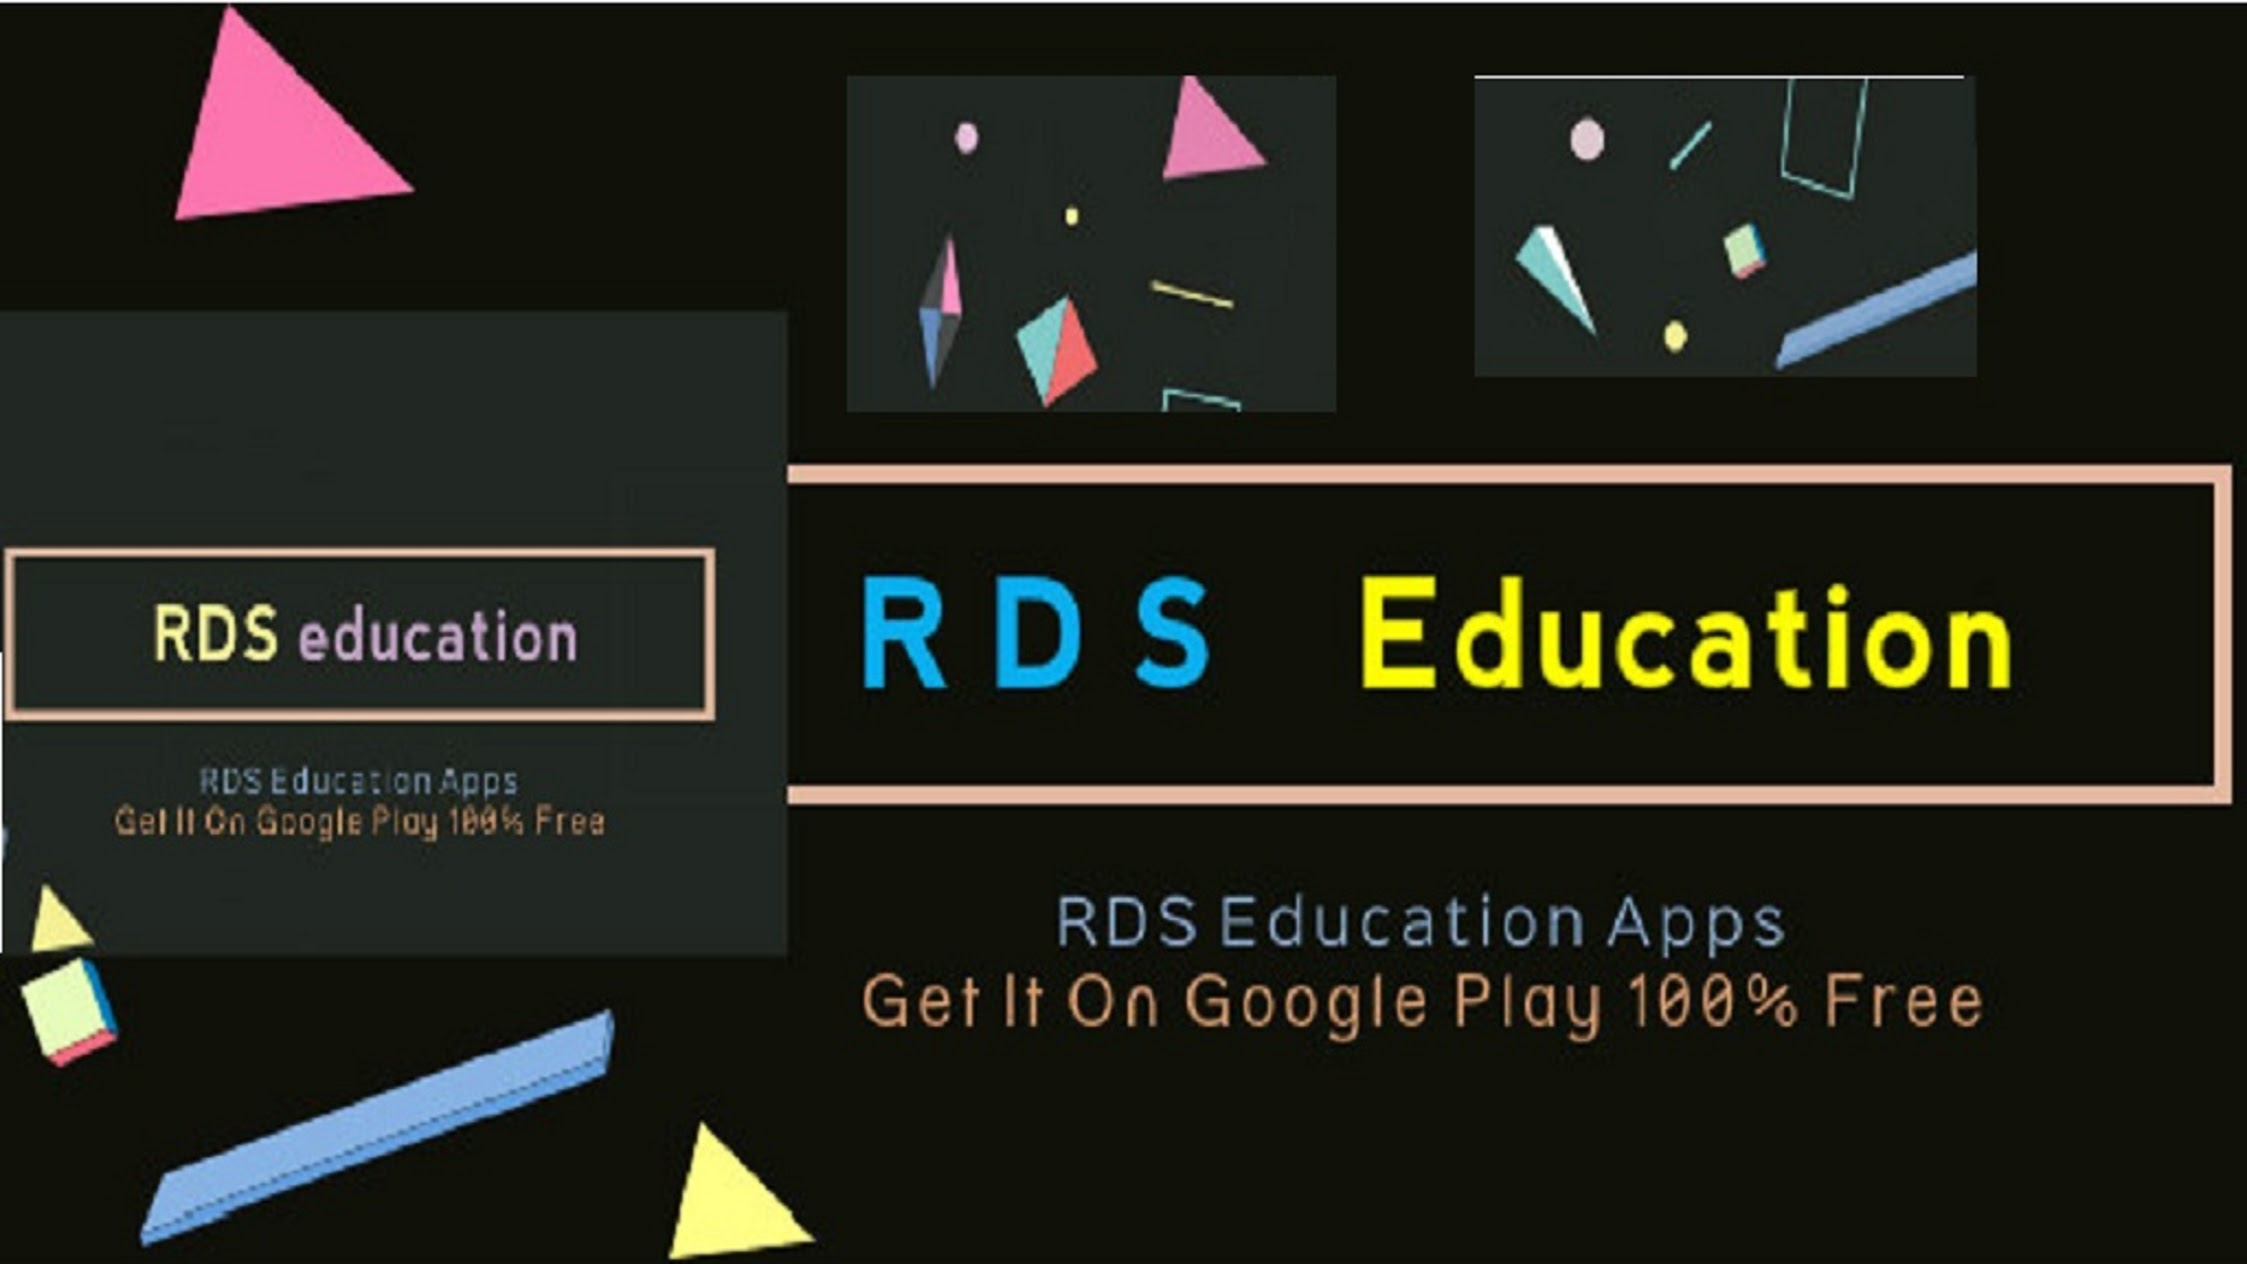 RDS EDUCATION APPS